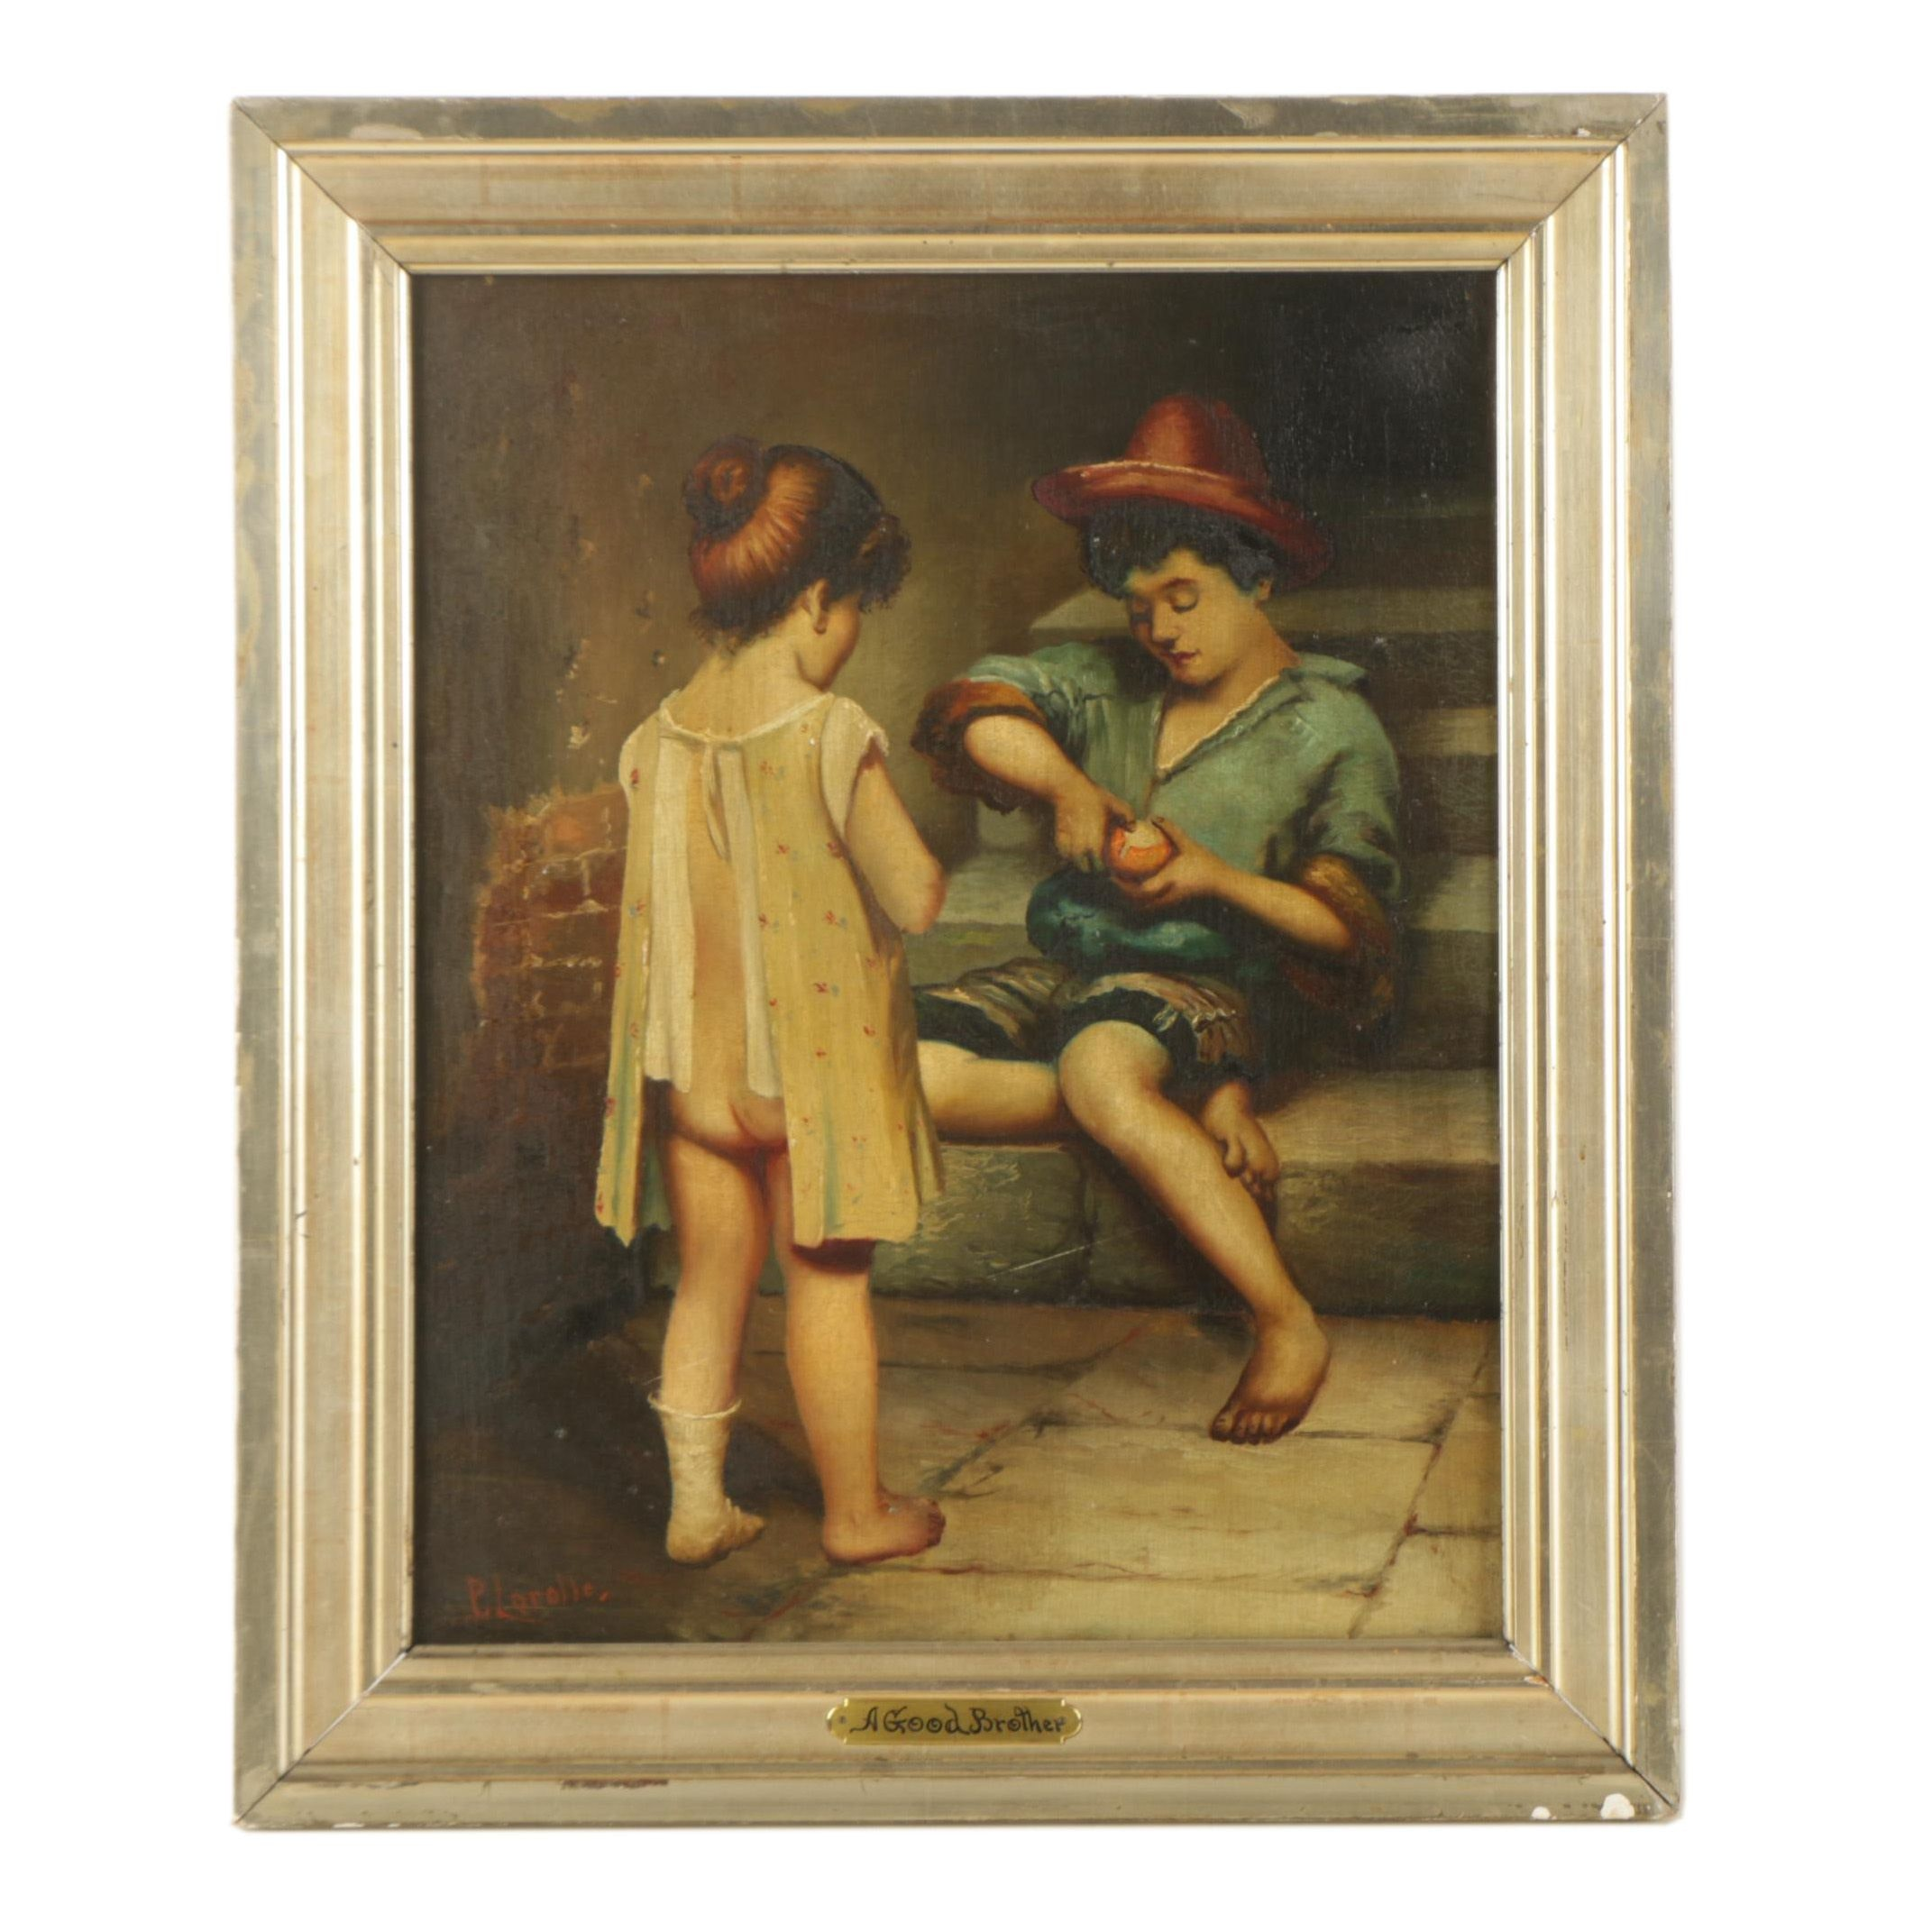 "P. Lerolle Oil Painting ""A Good Brother"""